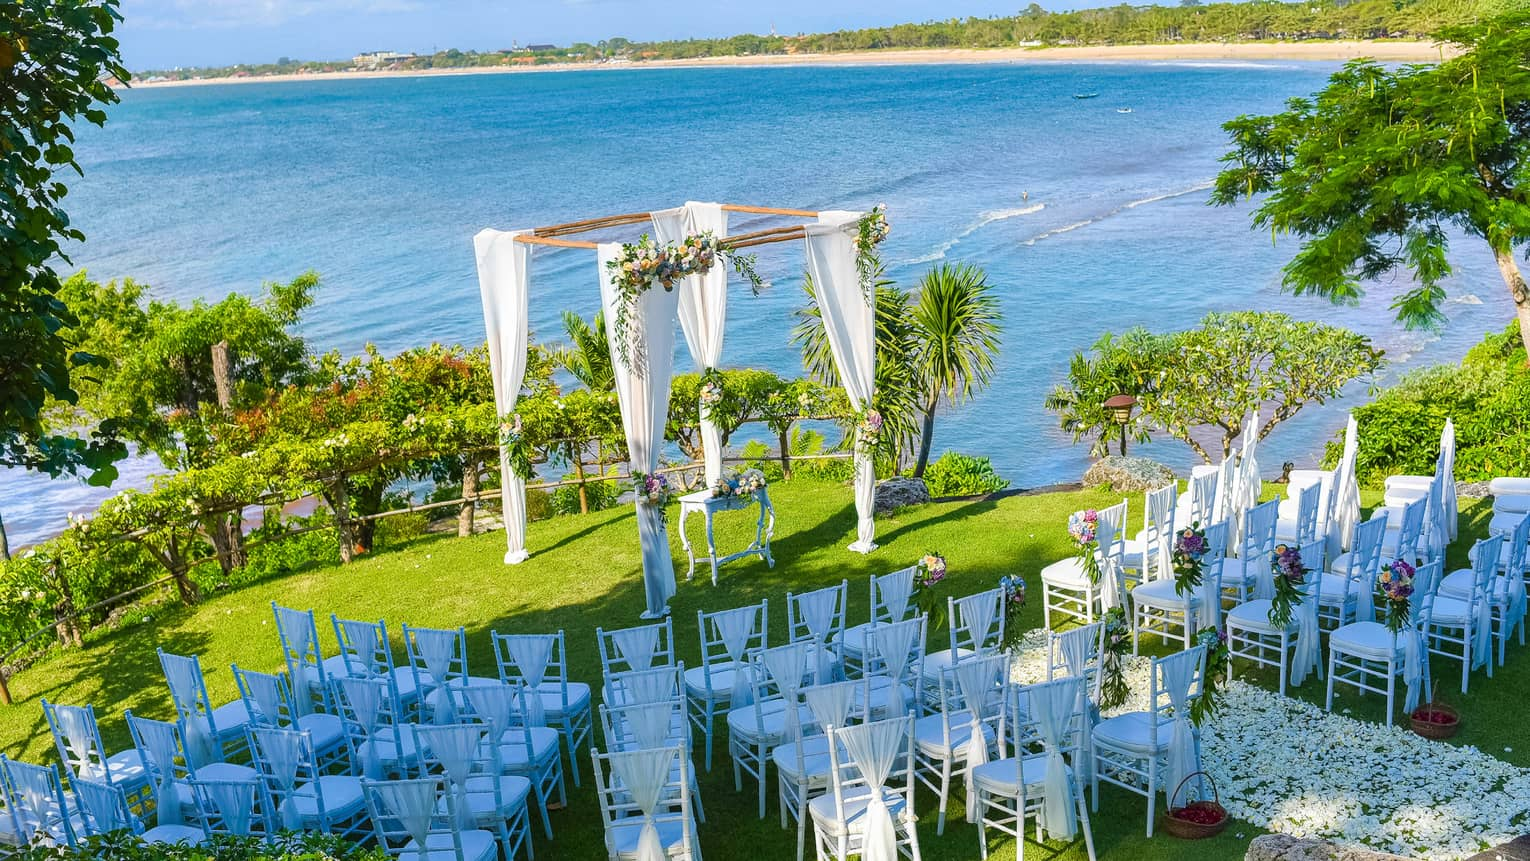 Aerial view of rows of white chairs facing wedding altar on lawn by ocean